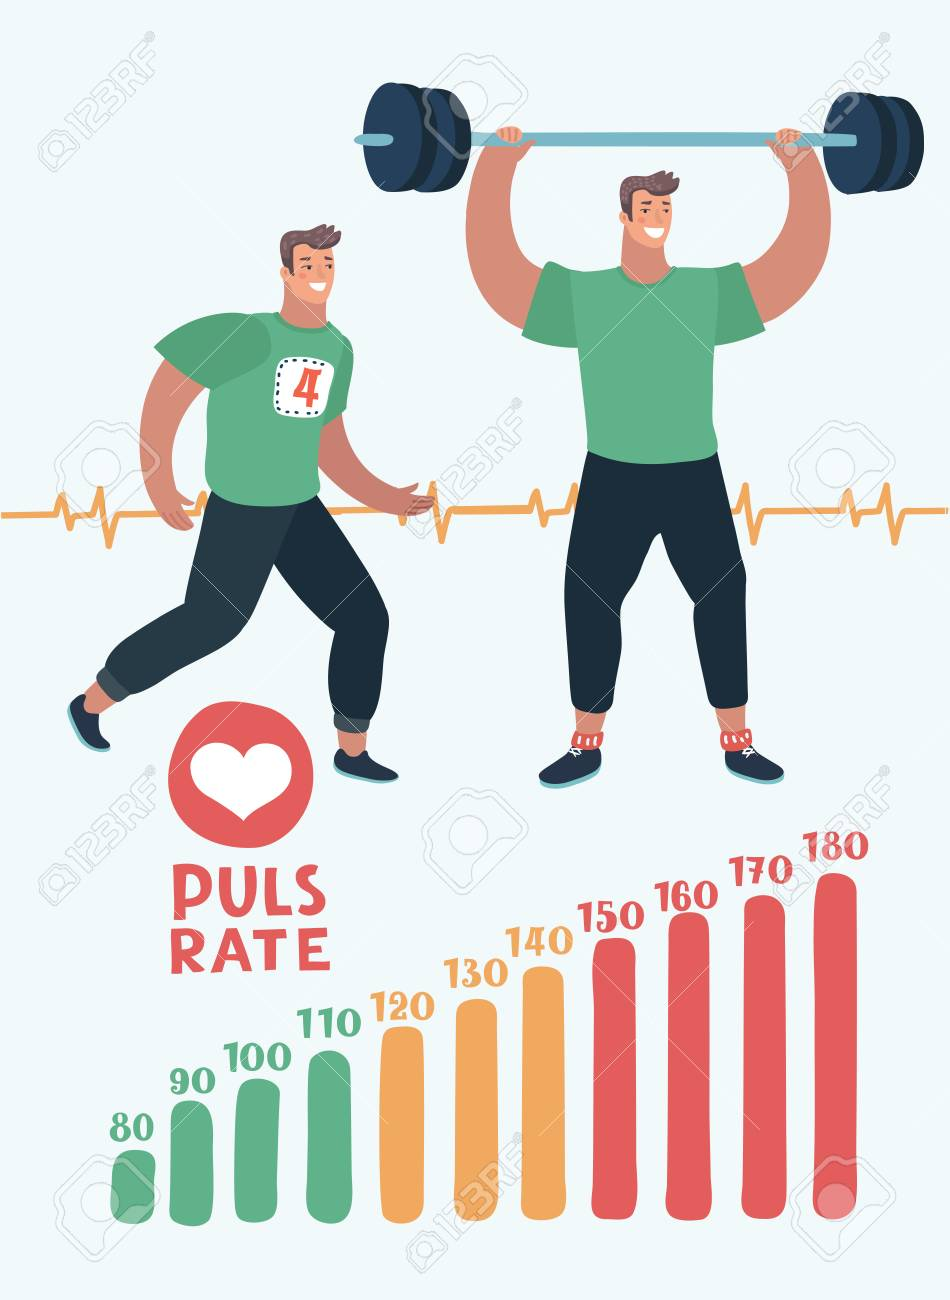 Vector cartoon illustration of element of pulse rate scale, running man, man with barbell and Rate Pulse. Cardio, anaerobic aerobic workouts - 104548679